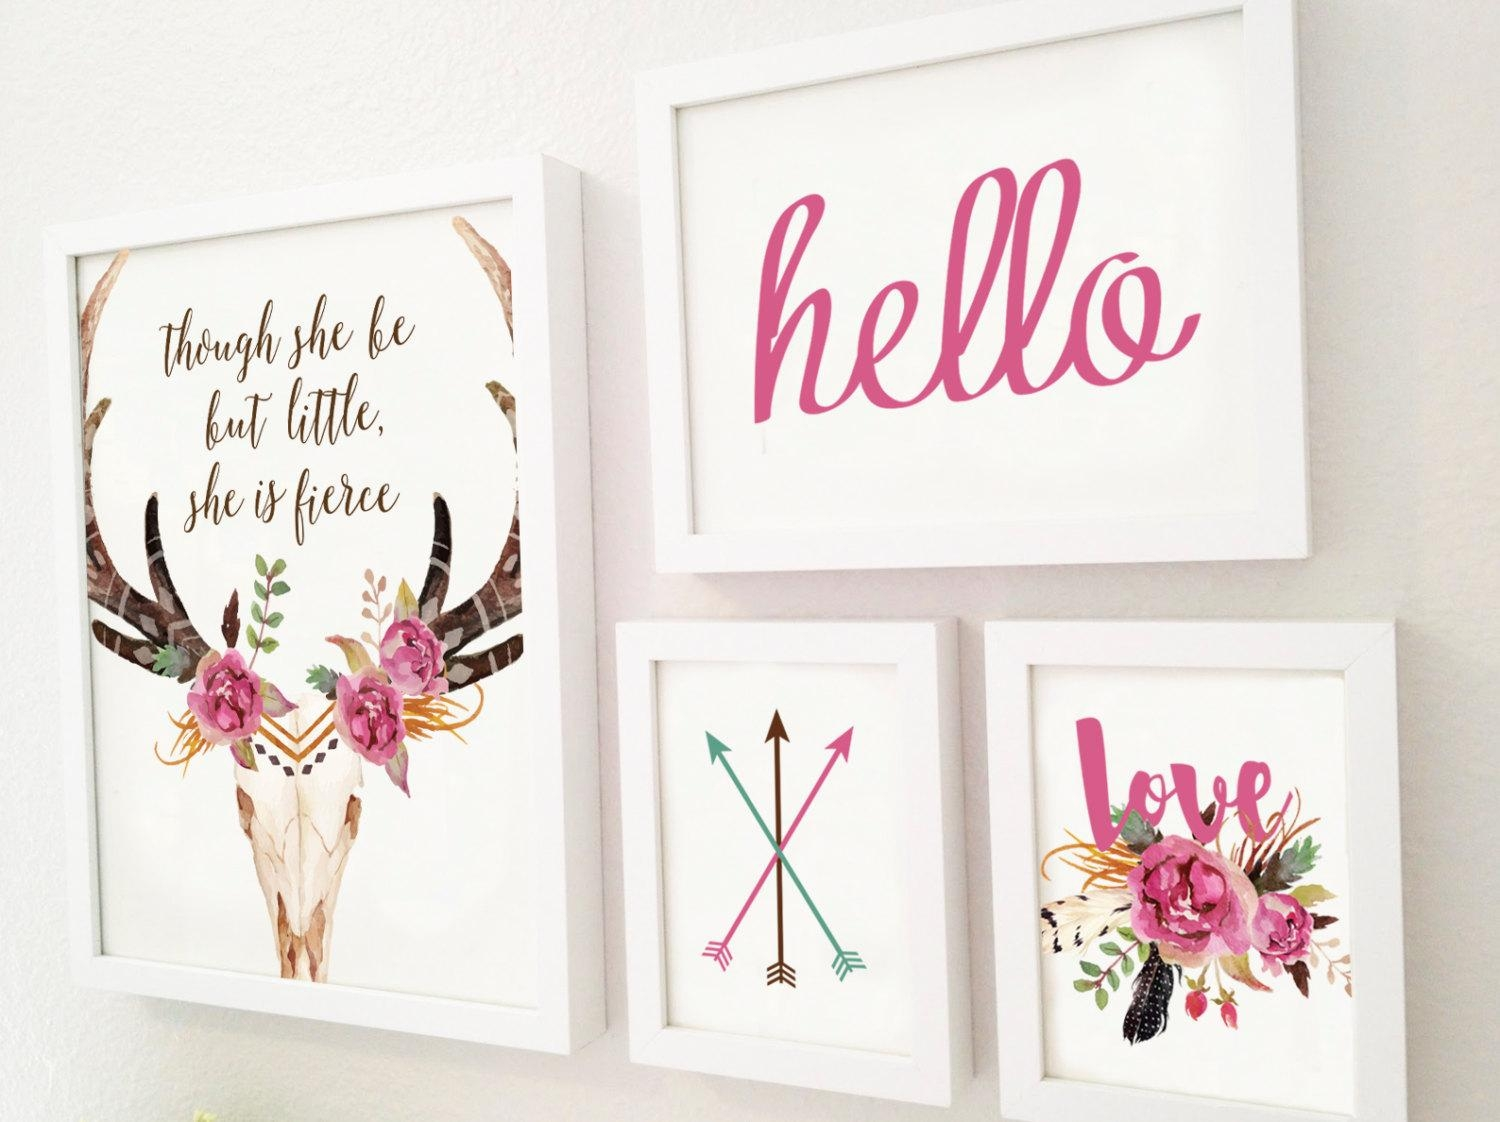 Four Piece Gallery Wall Set Children's Room Art Rustic Intended For Wall Art Print Sets (View 5 of 20)